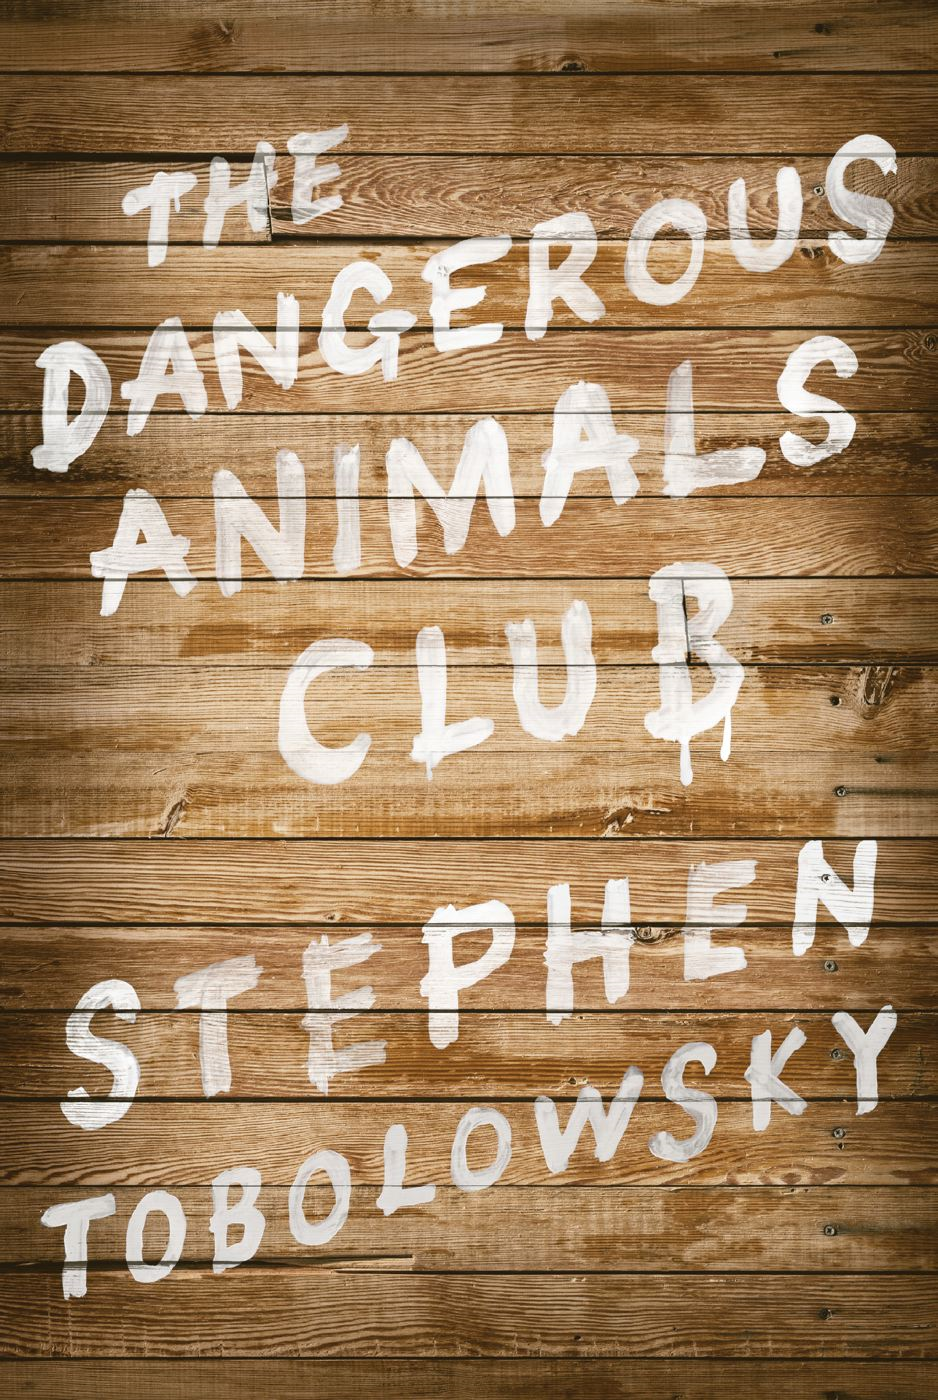 The Dangerous Animals Club By: Stephen Tobolowsky